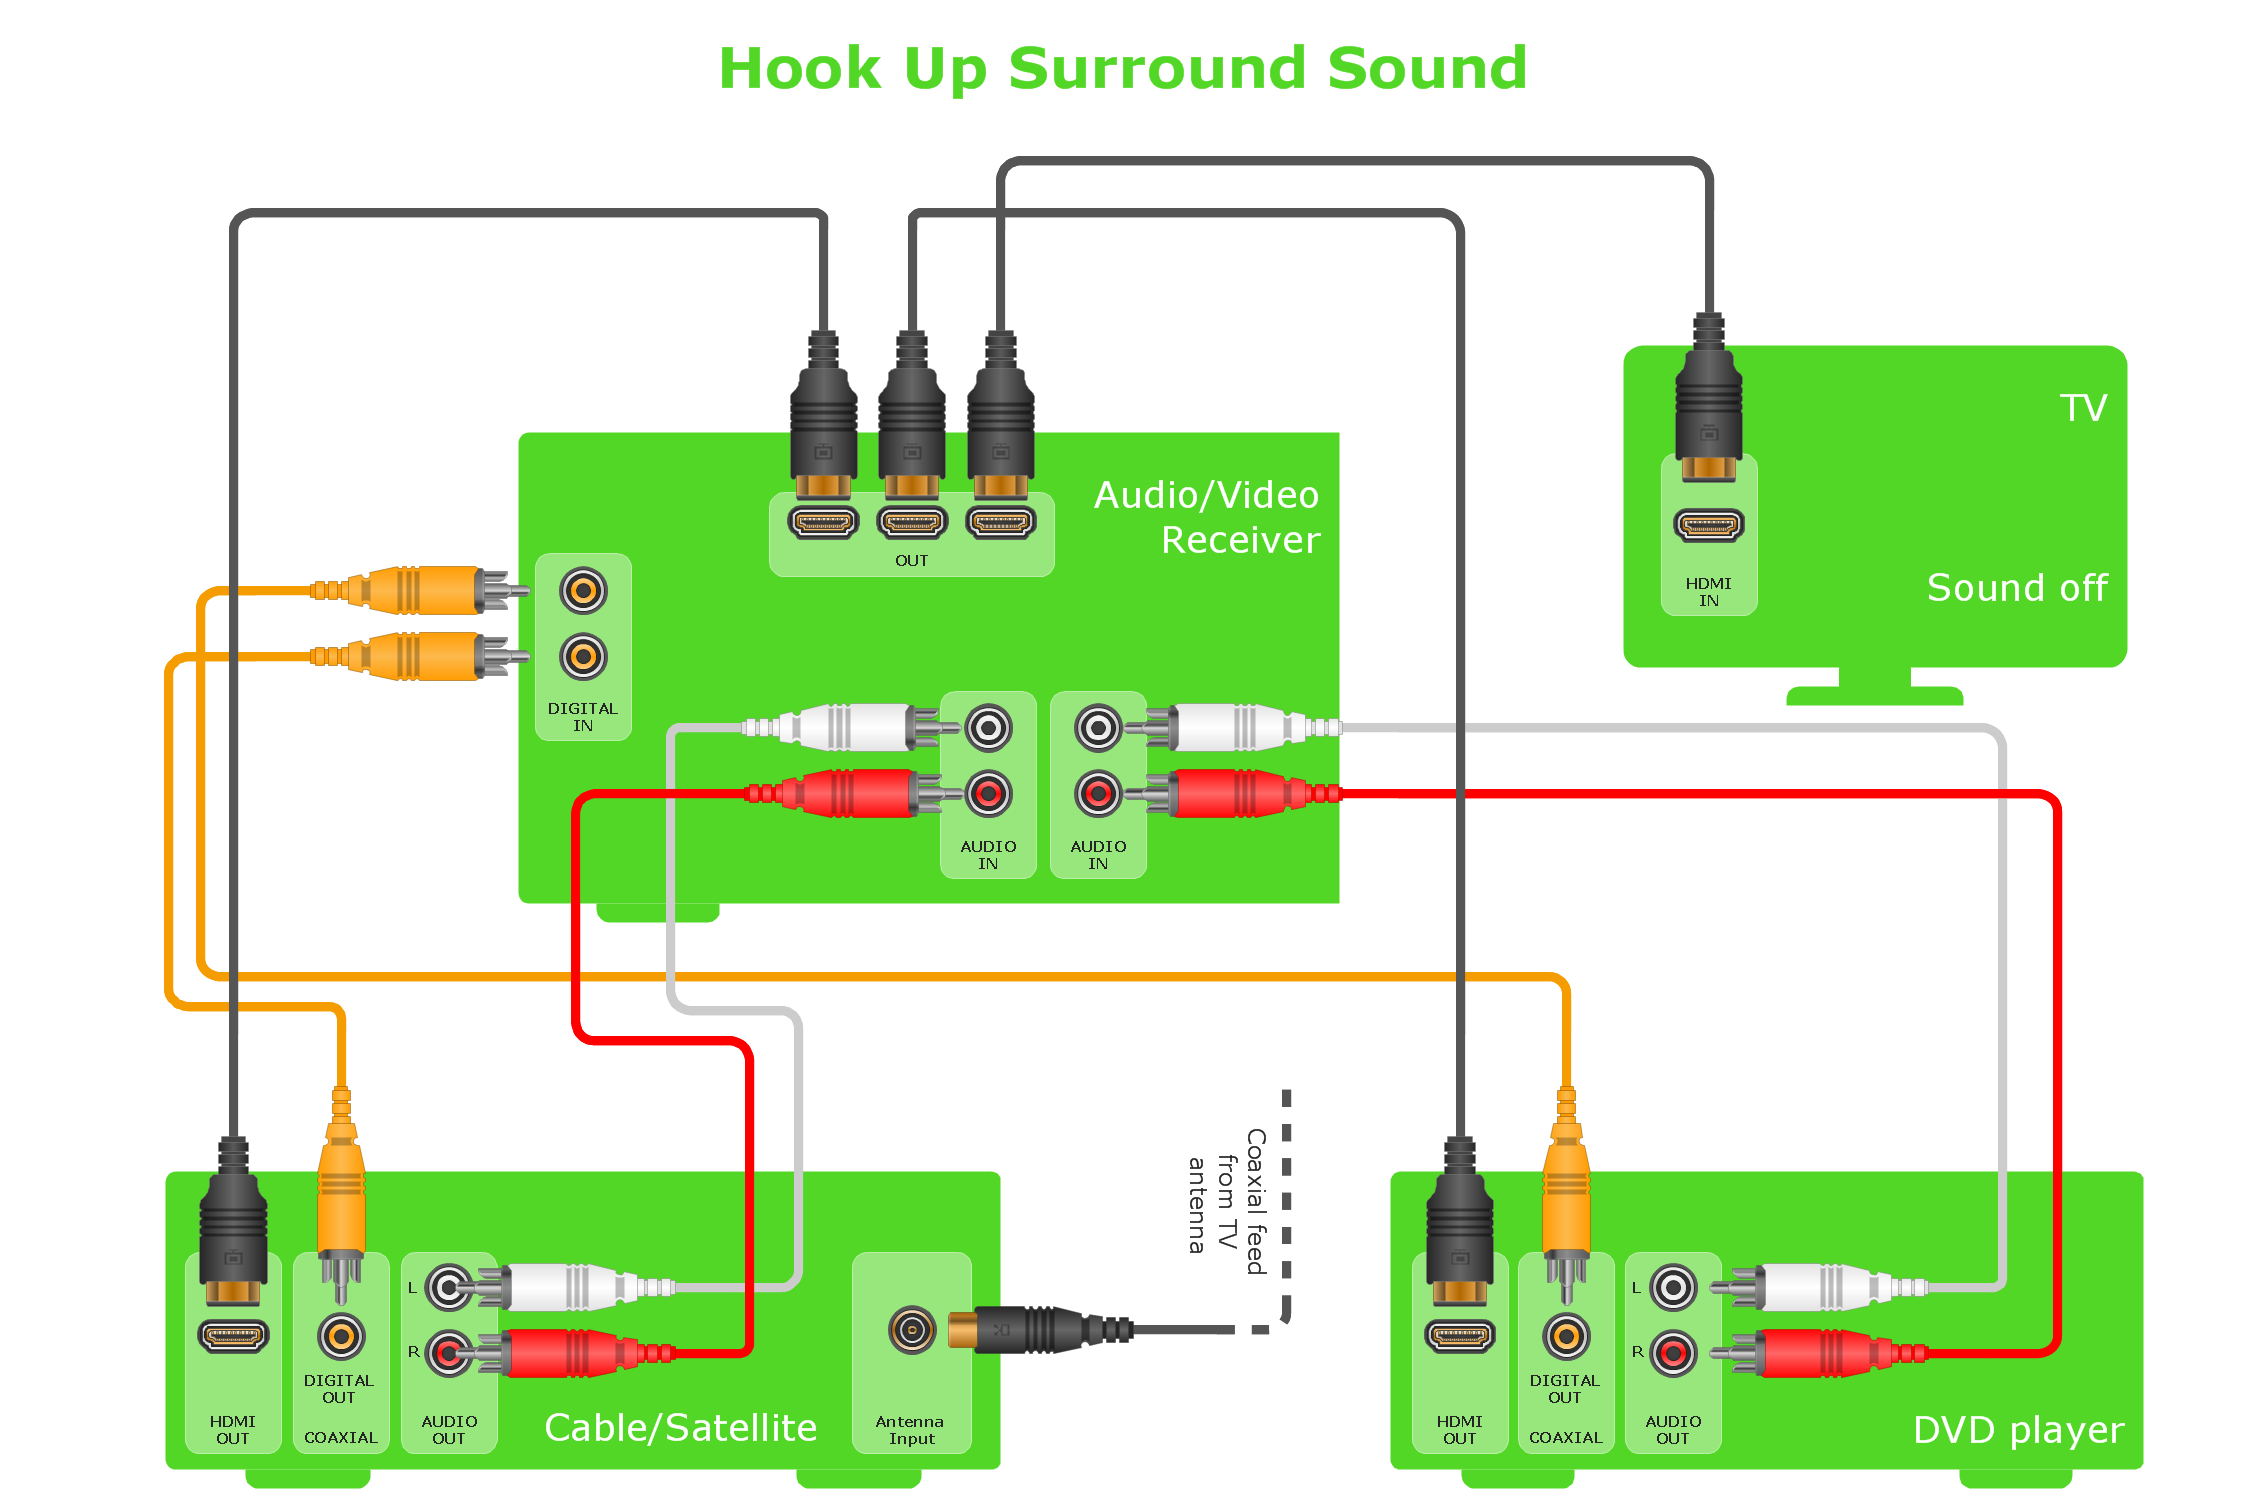 wiring diagram for live sound detailed wiring diagram for surround sound system audio & video connections | how to use house electrical ...